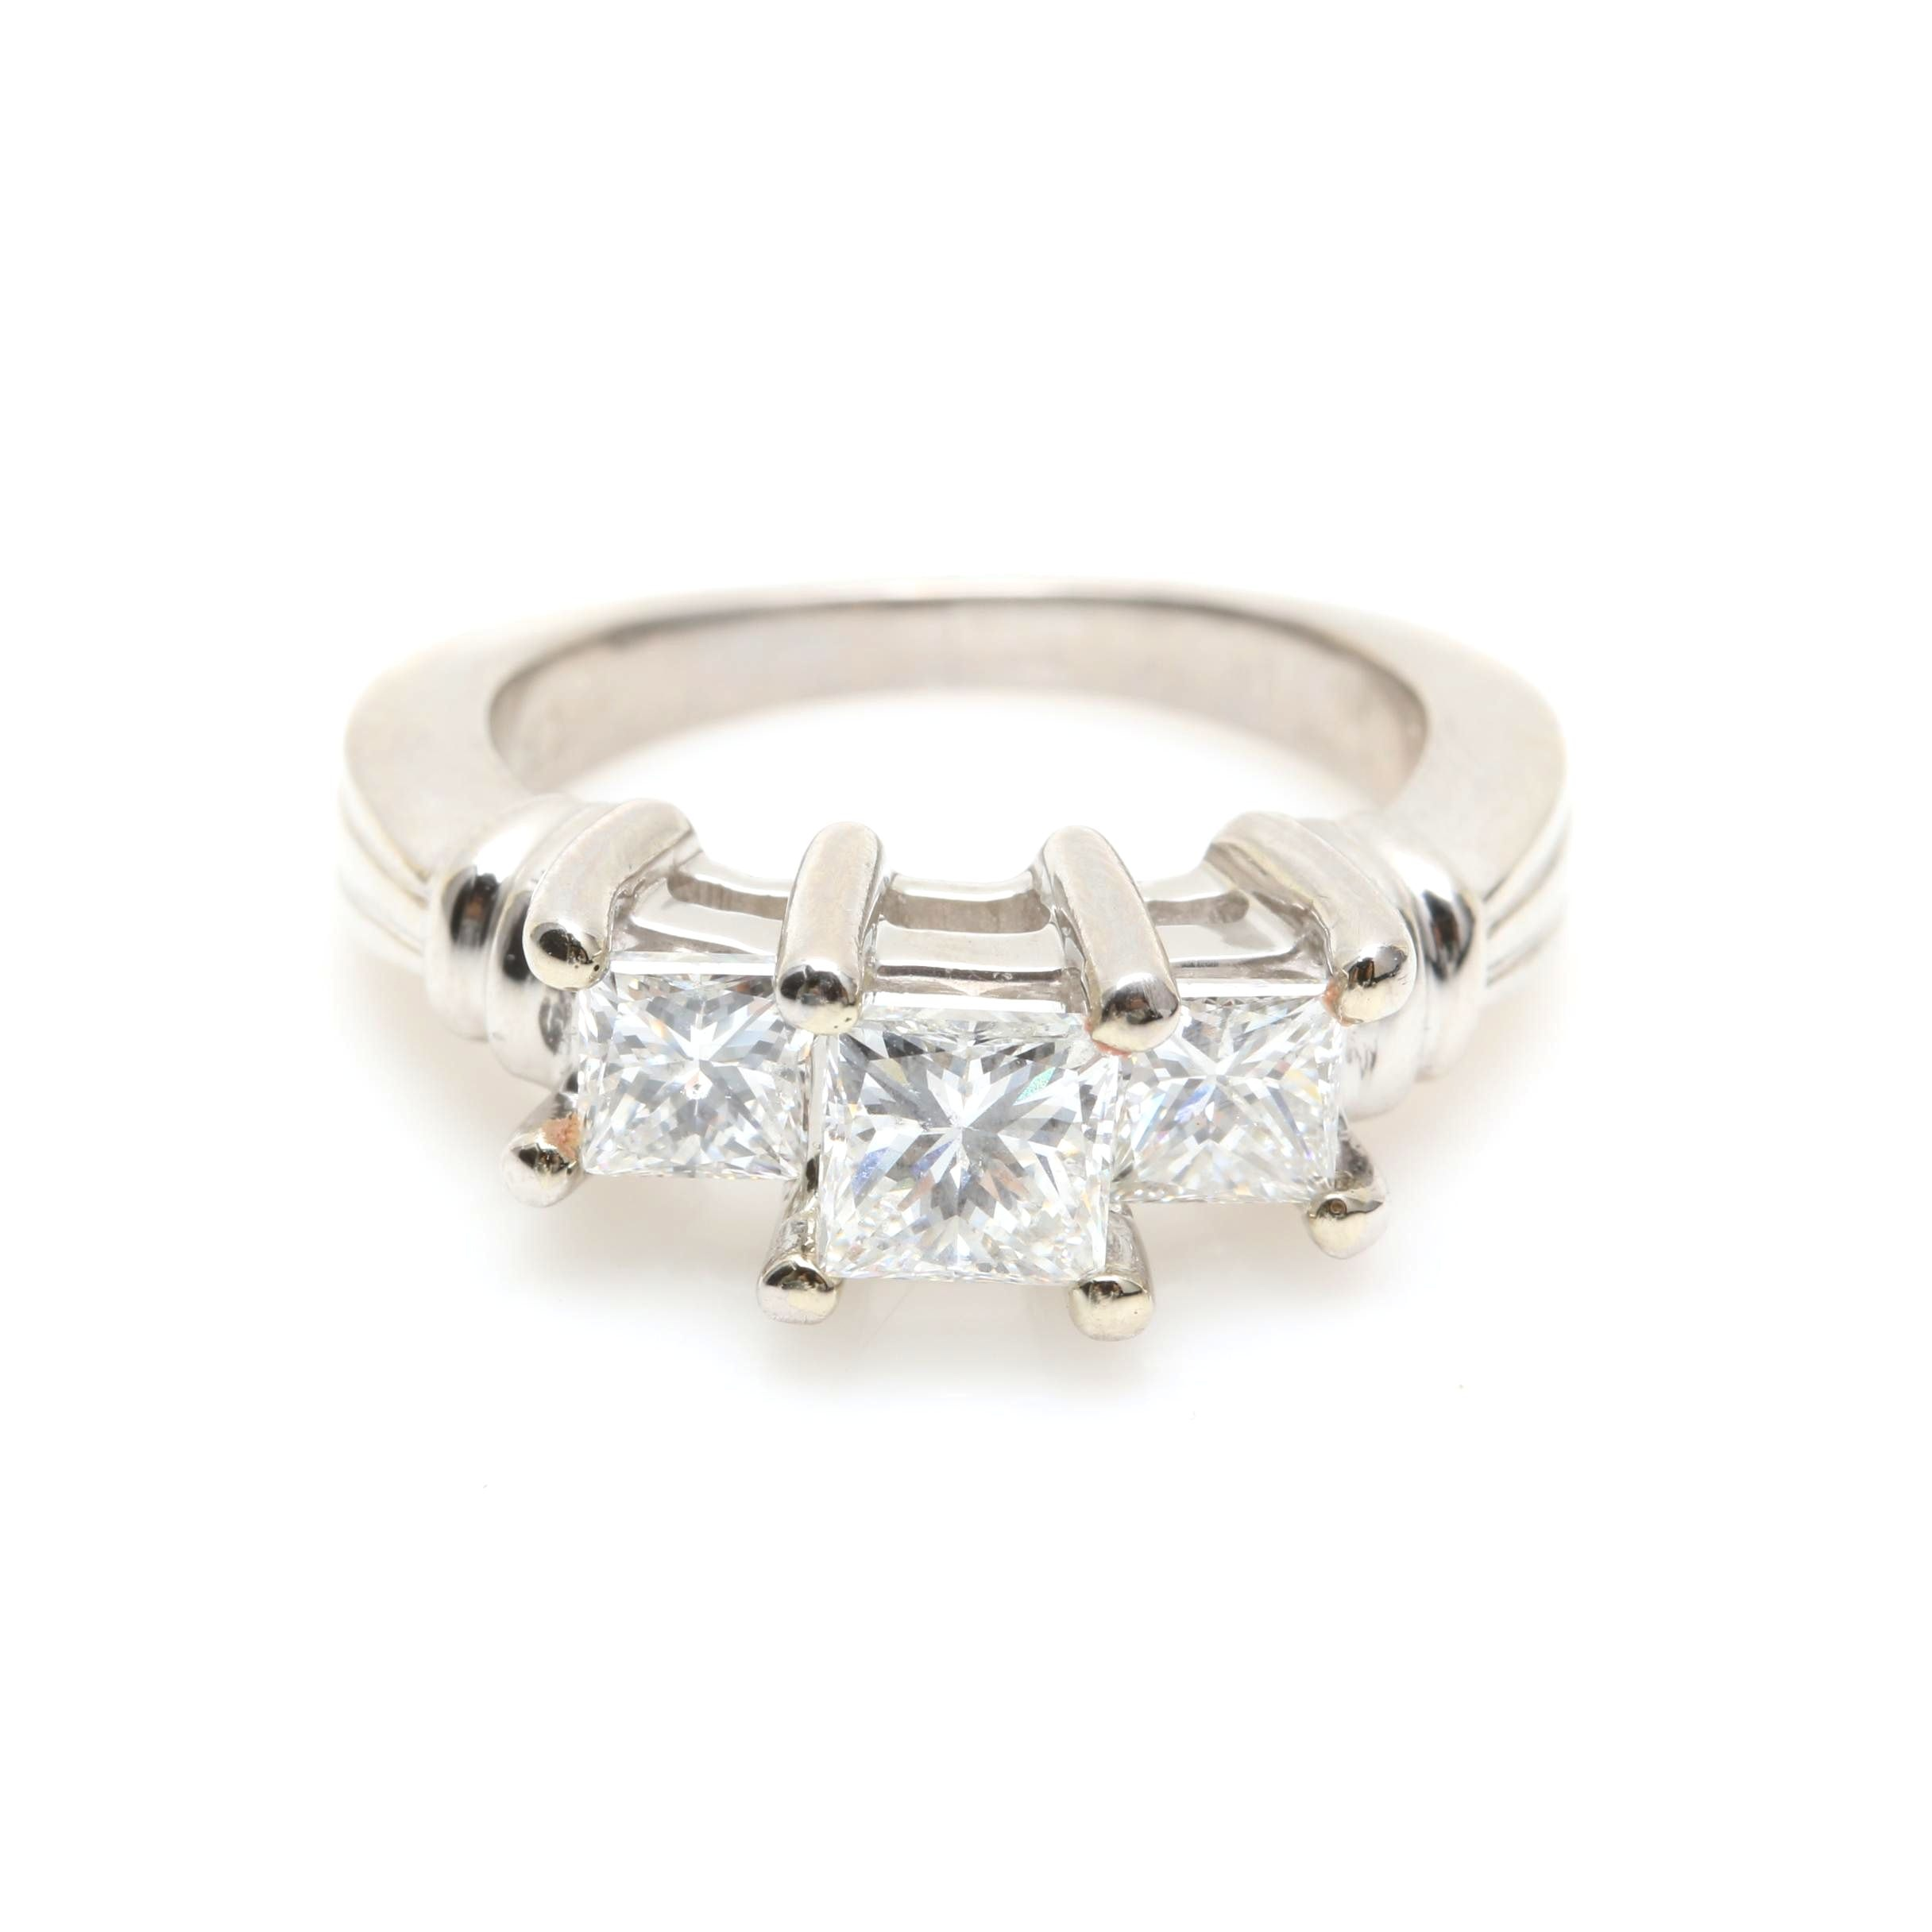 Platinum 1.34 CTW Diamond Ring